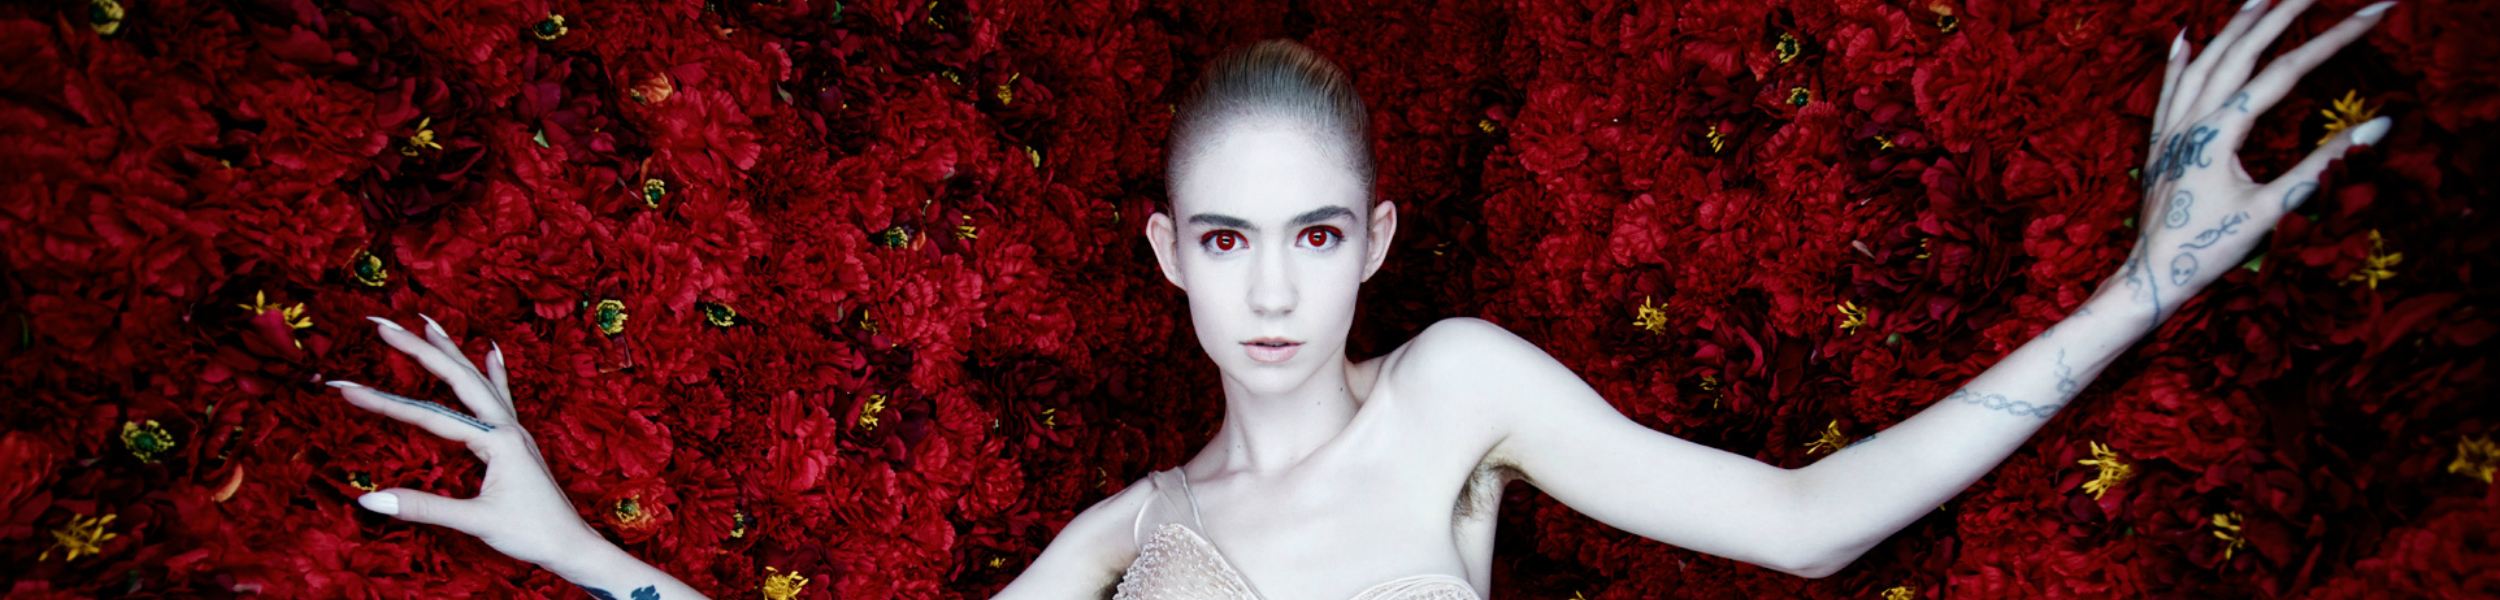 Grimes - Grimes Confirms A Host of Tour Dates, Performs Live on Later